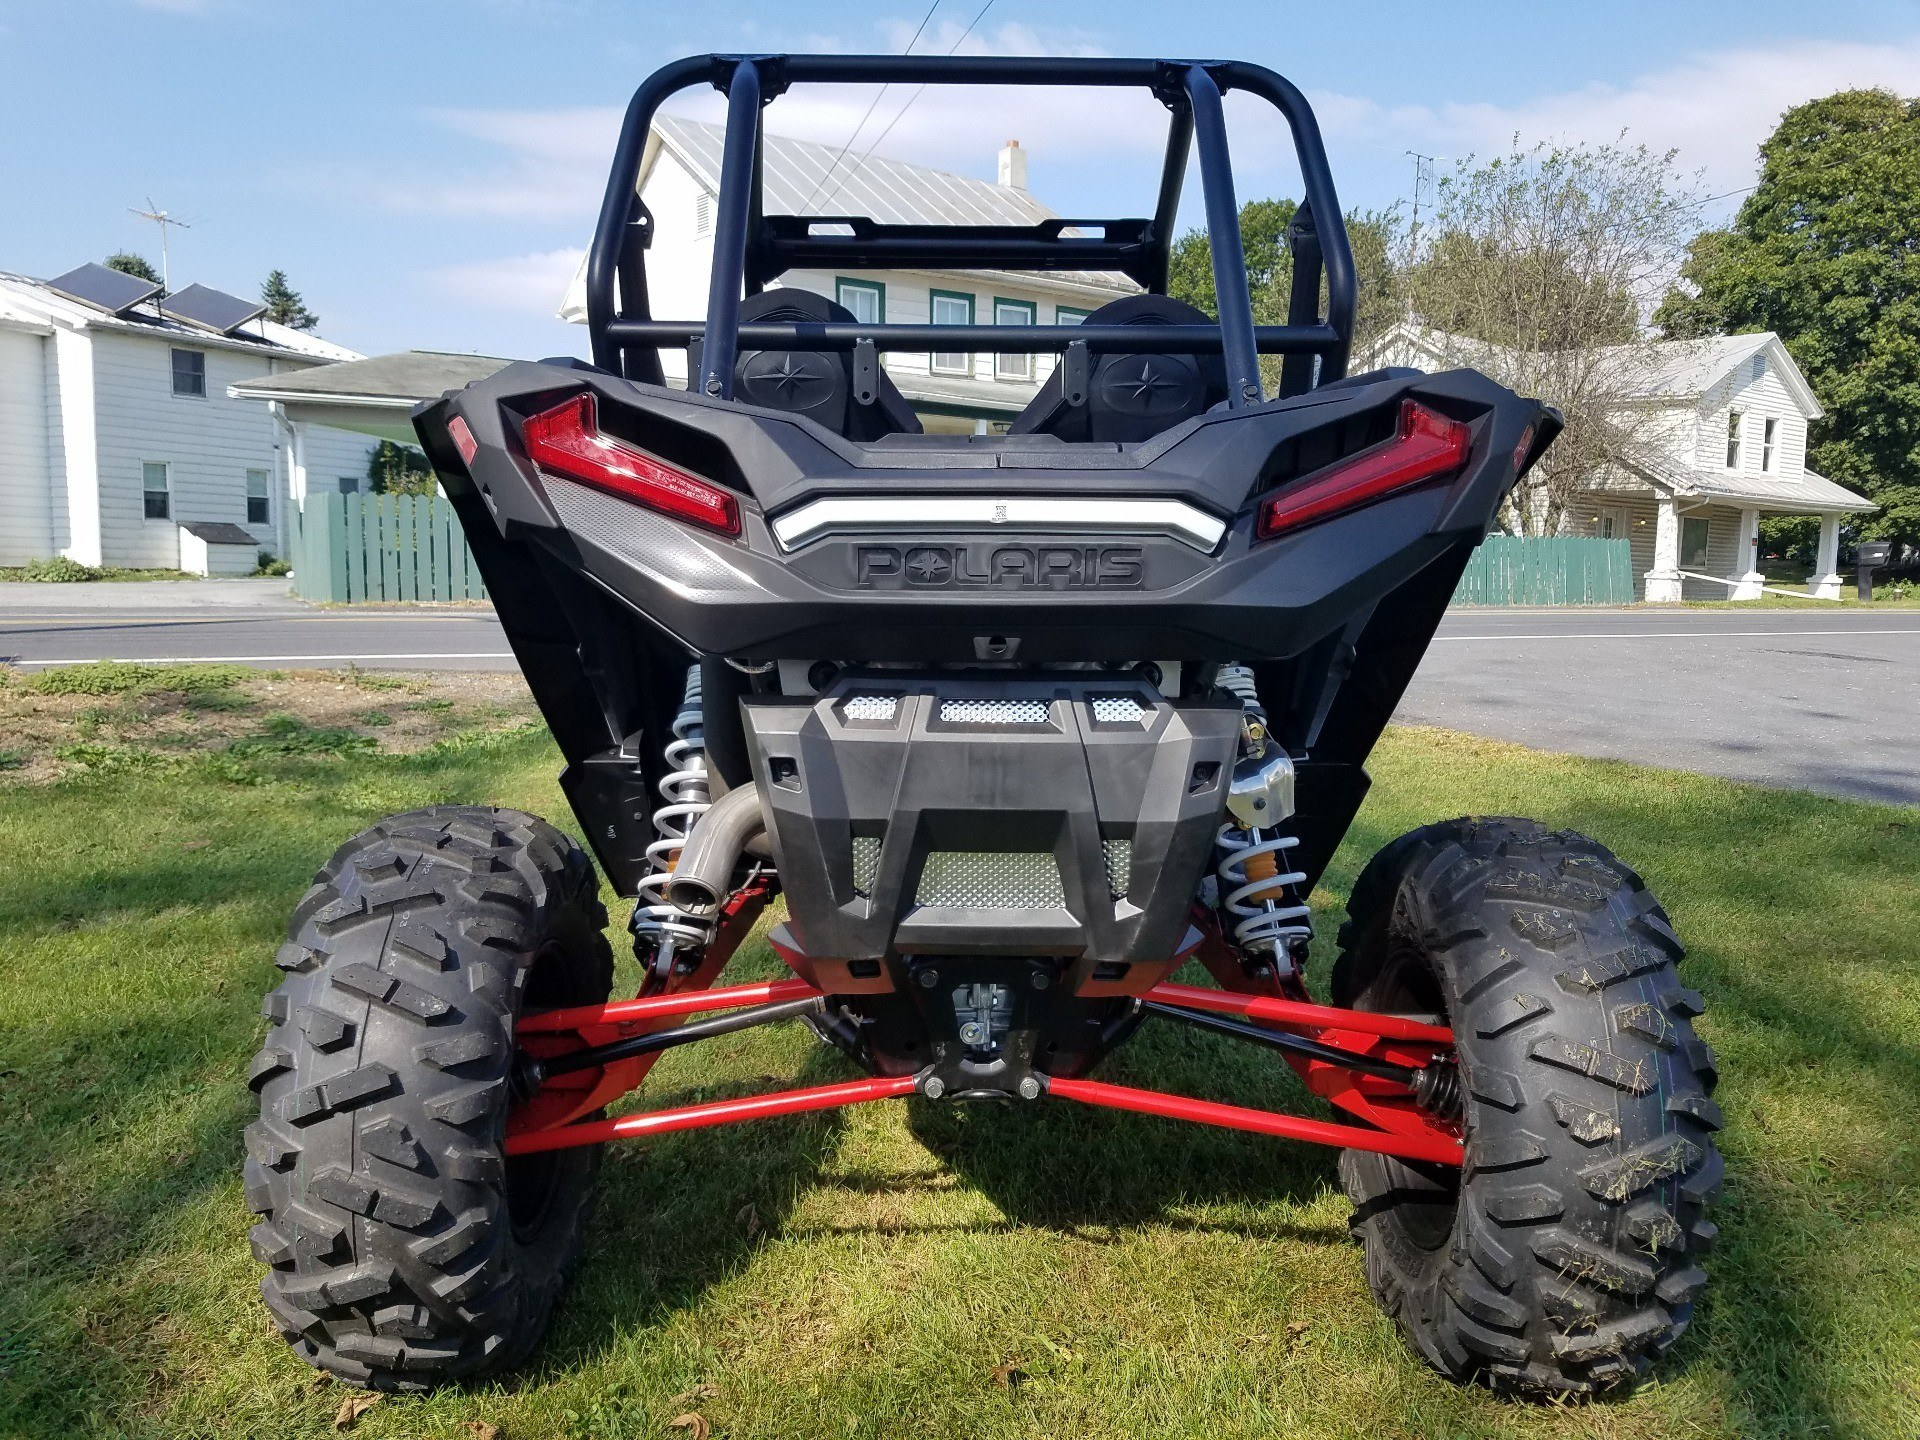 2020 Polaris RZR XP 1000 in Annville, Pennsylvania - Photo 4